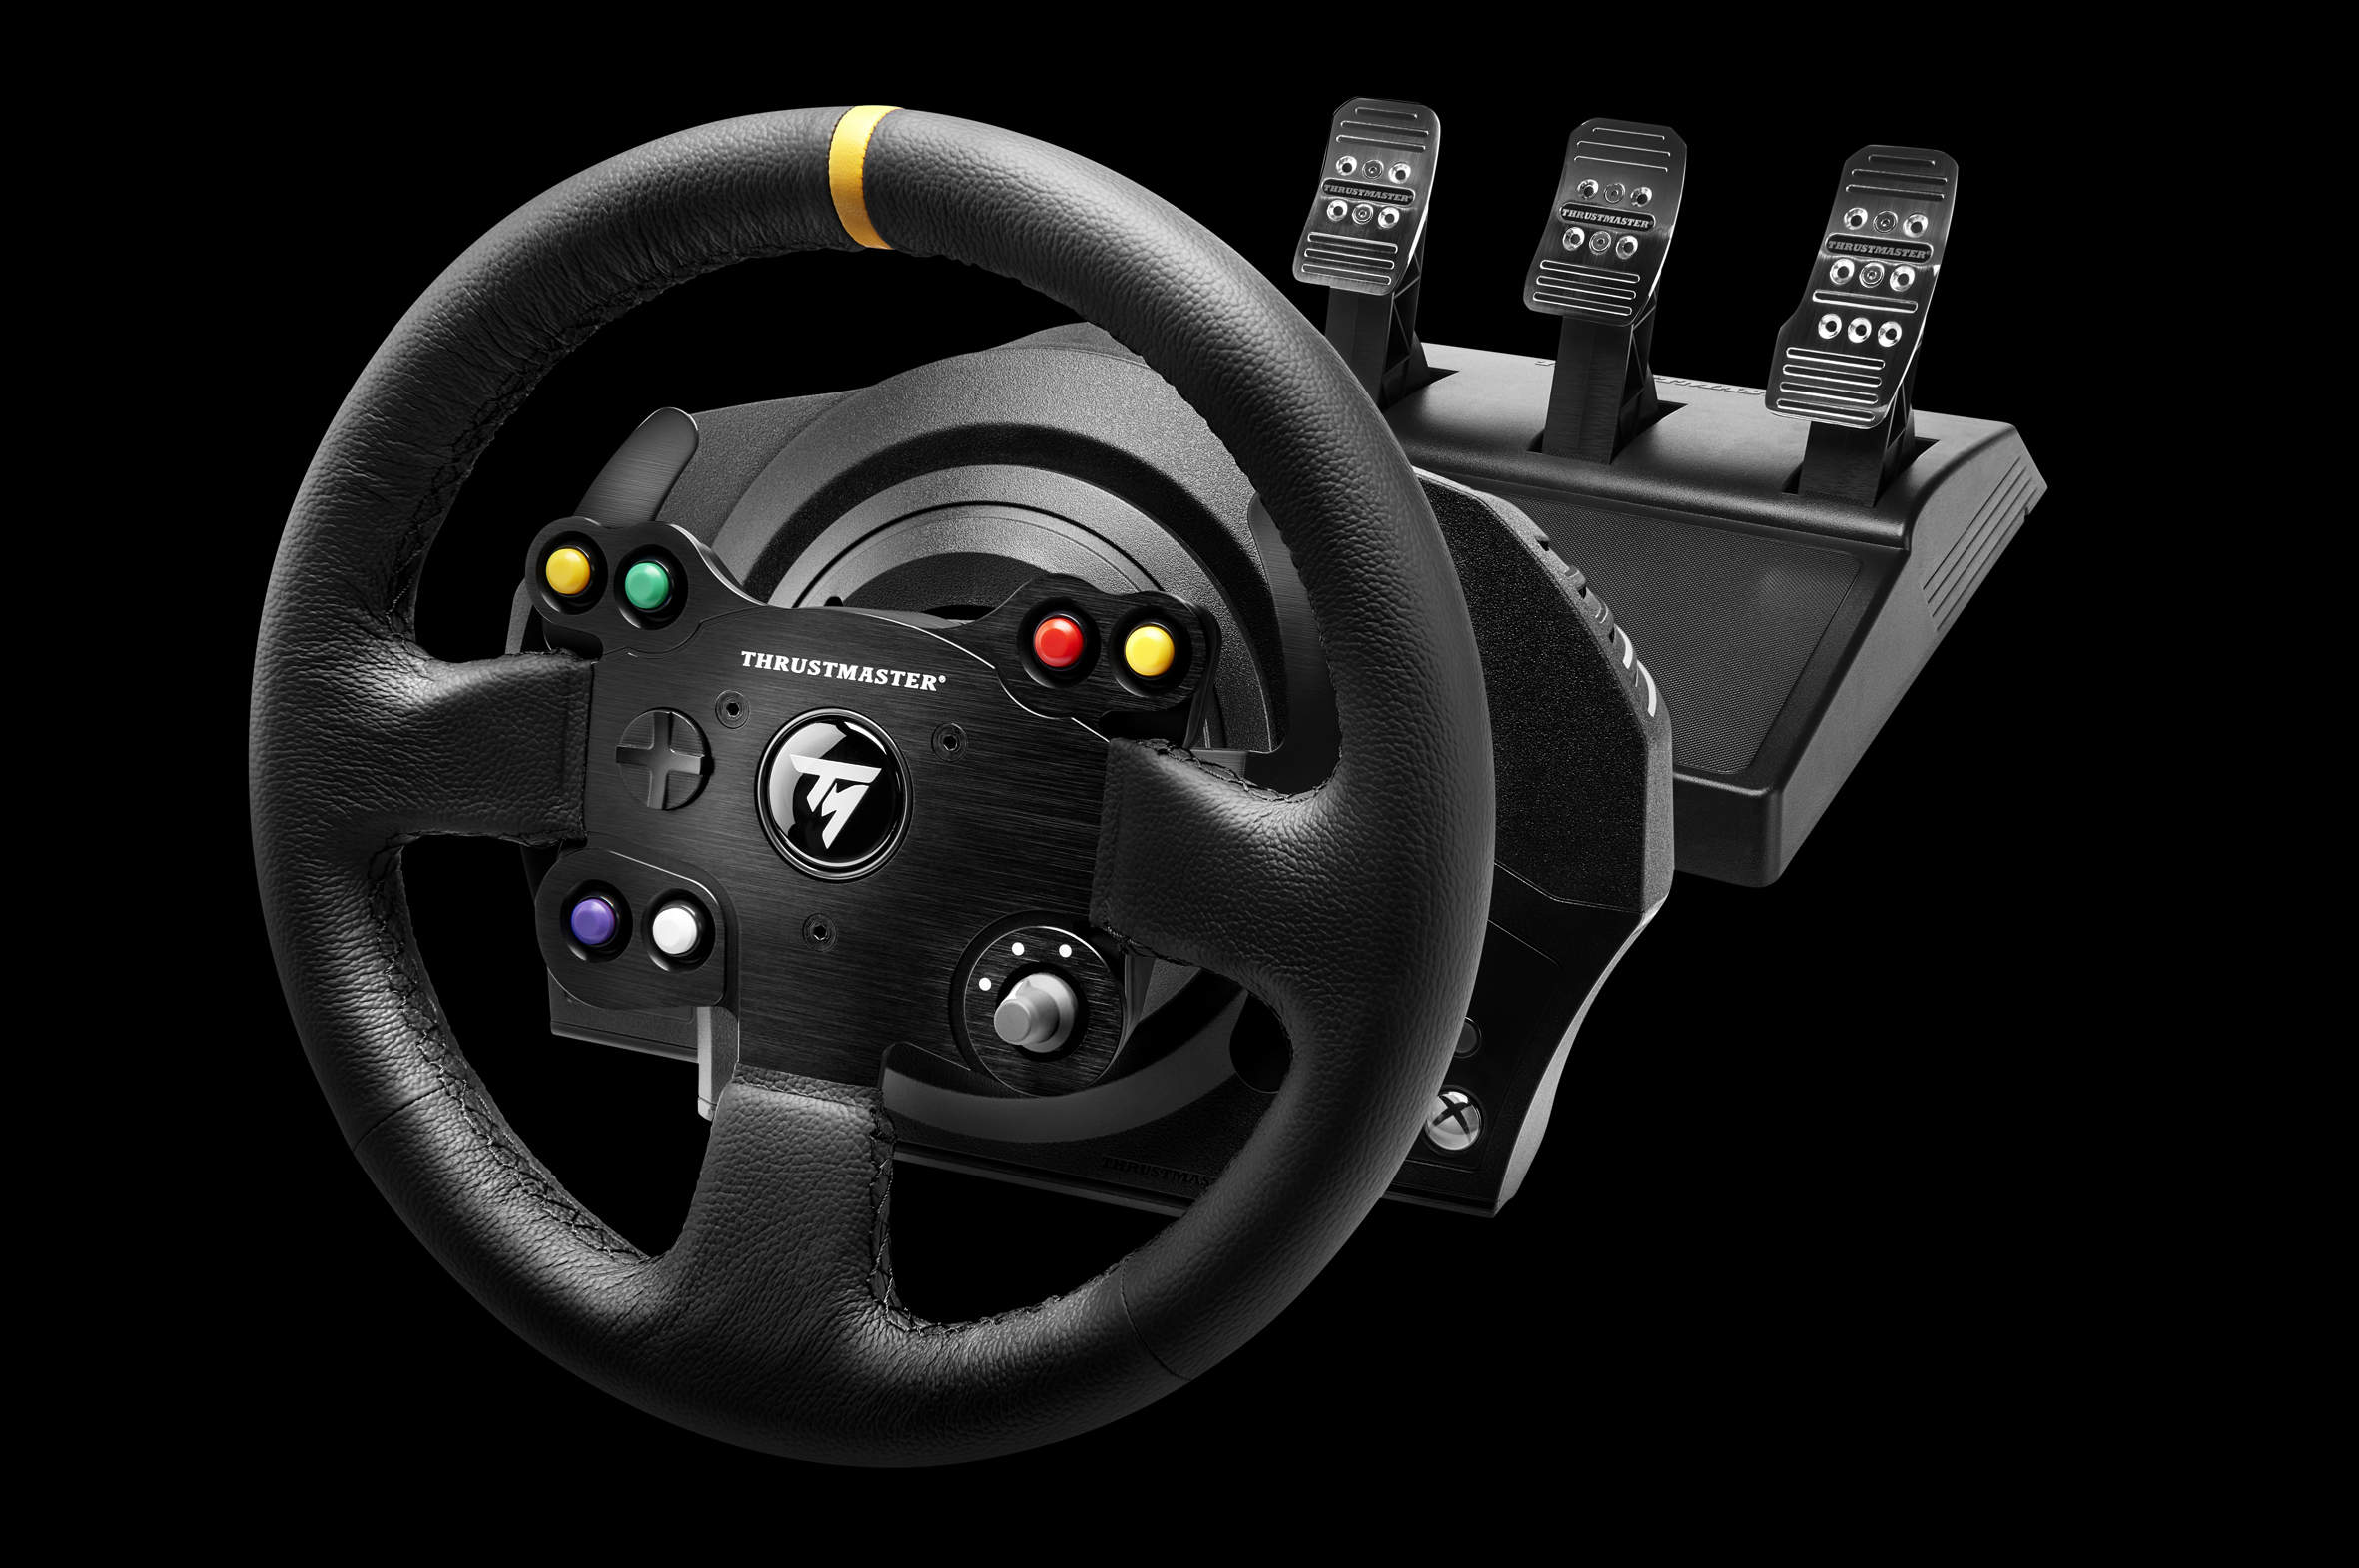 thrustmaster annonce le volant xbox one tx racing wheel leather edition xbox one xboxygen. Black Bedroom Furniture Sets. Home Design Ideas